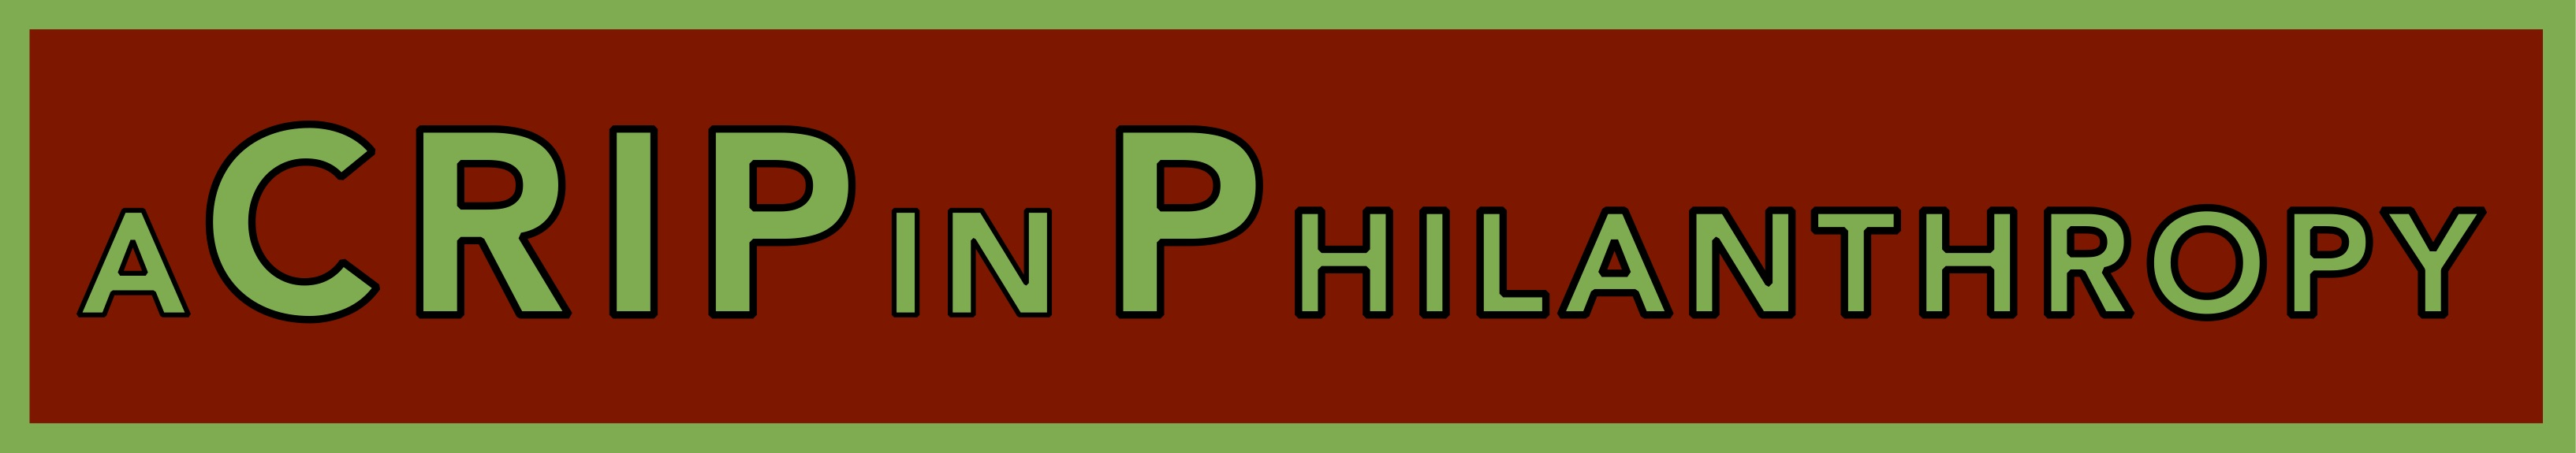 A Crip in Philanthropy banner in red and green